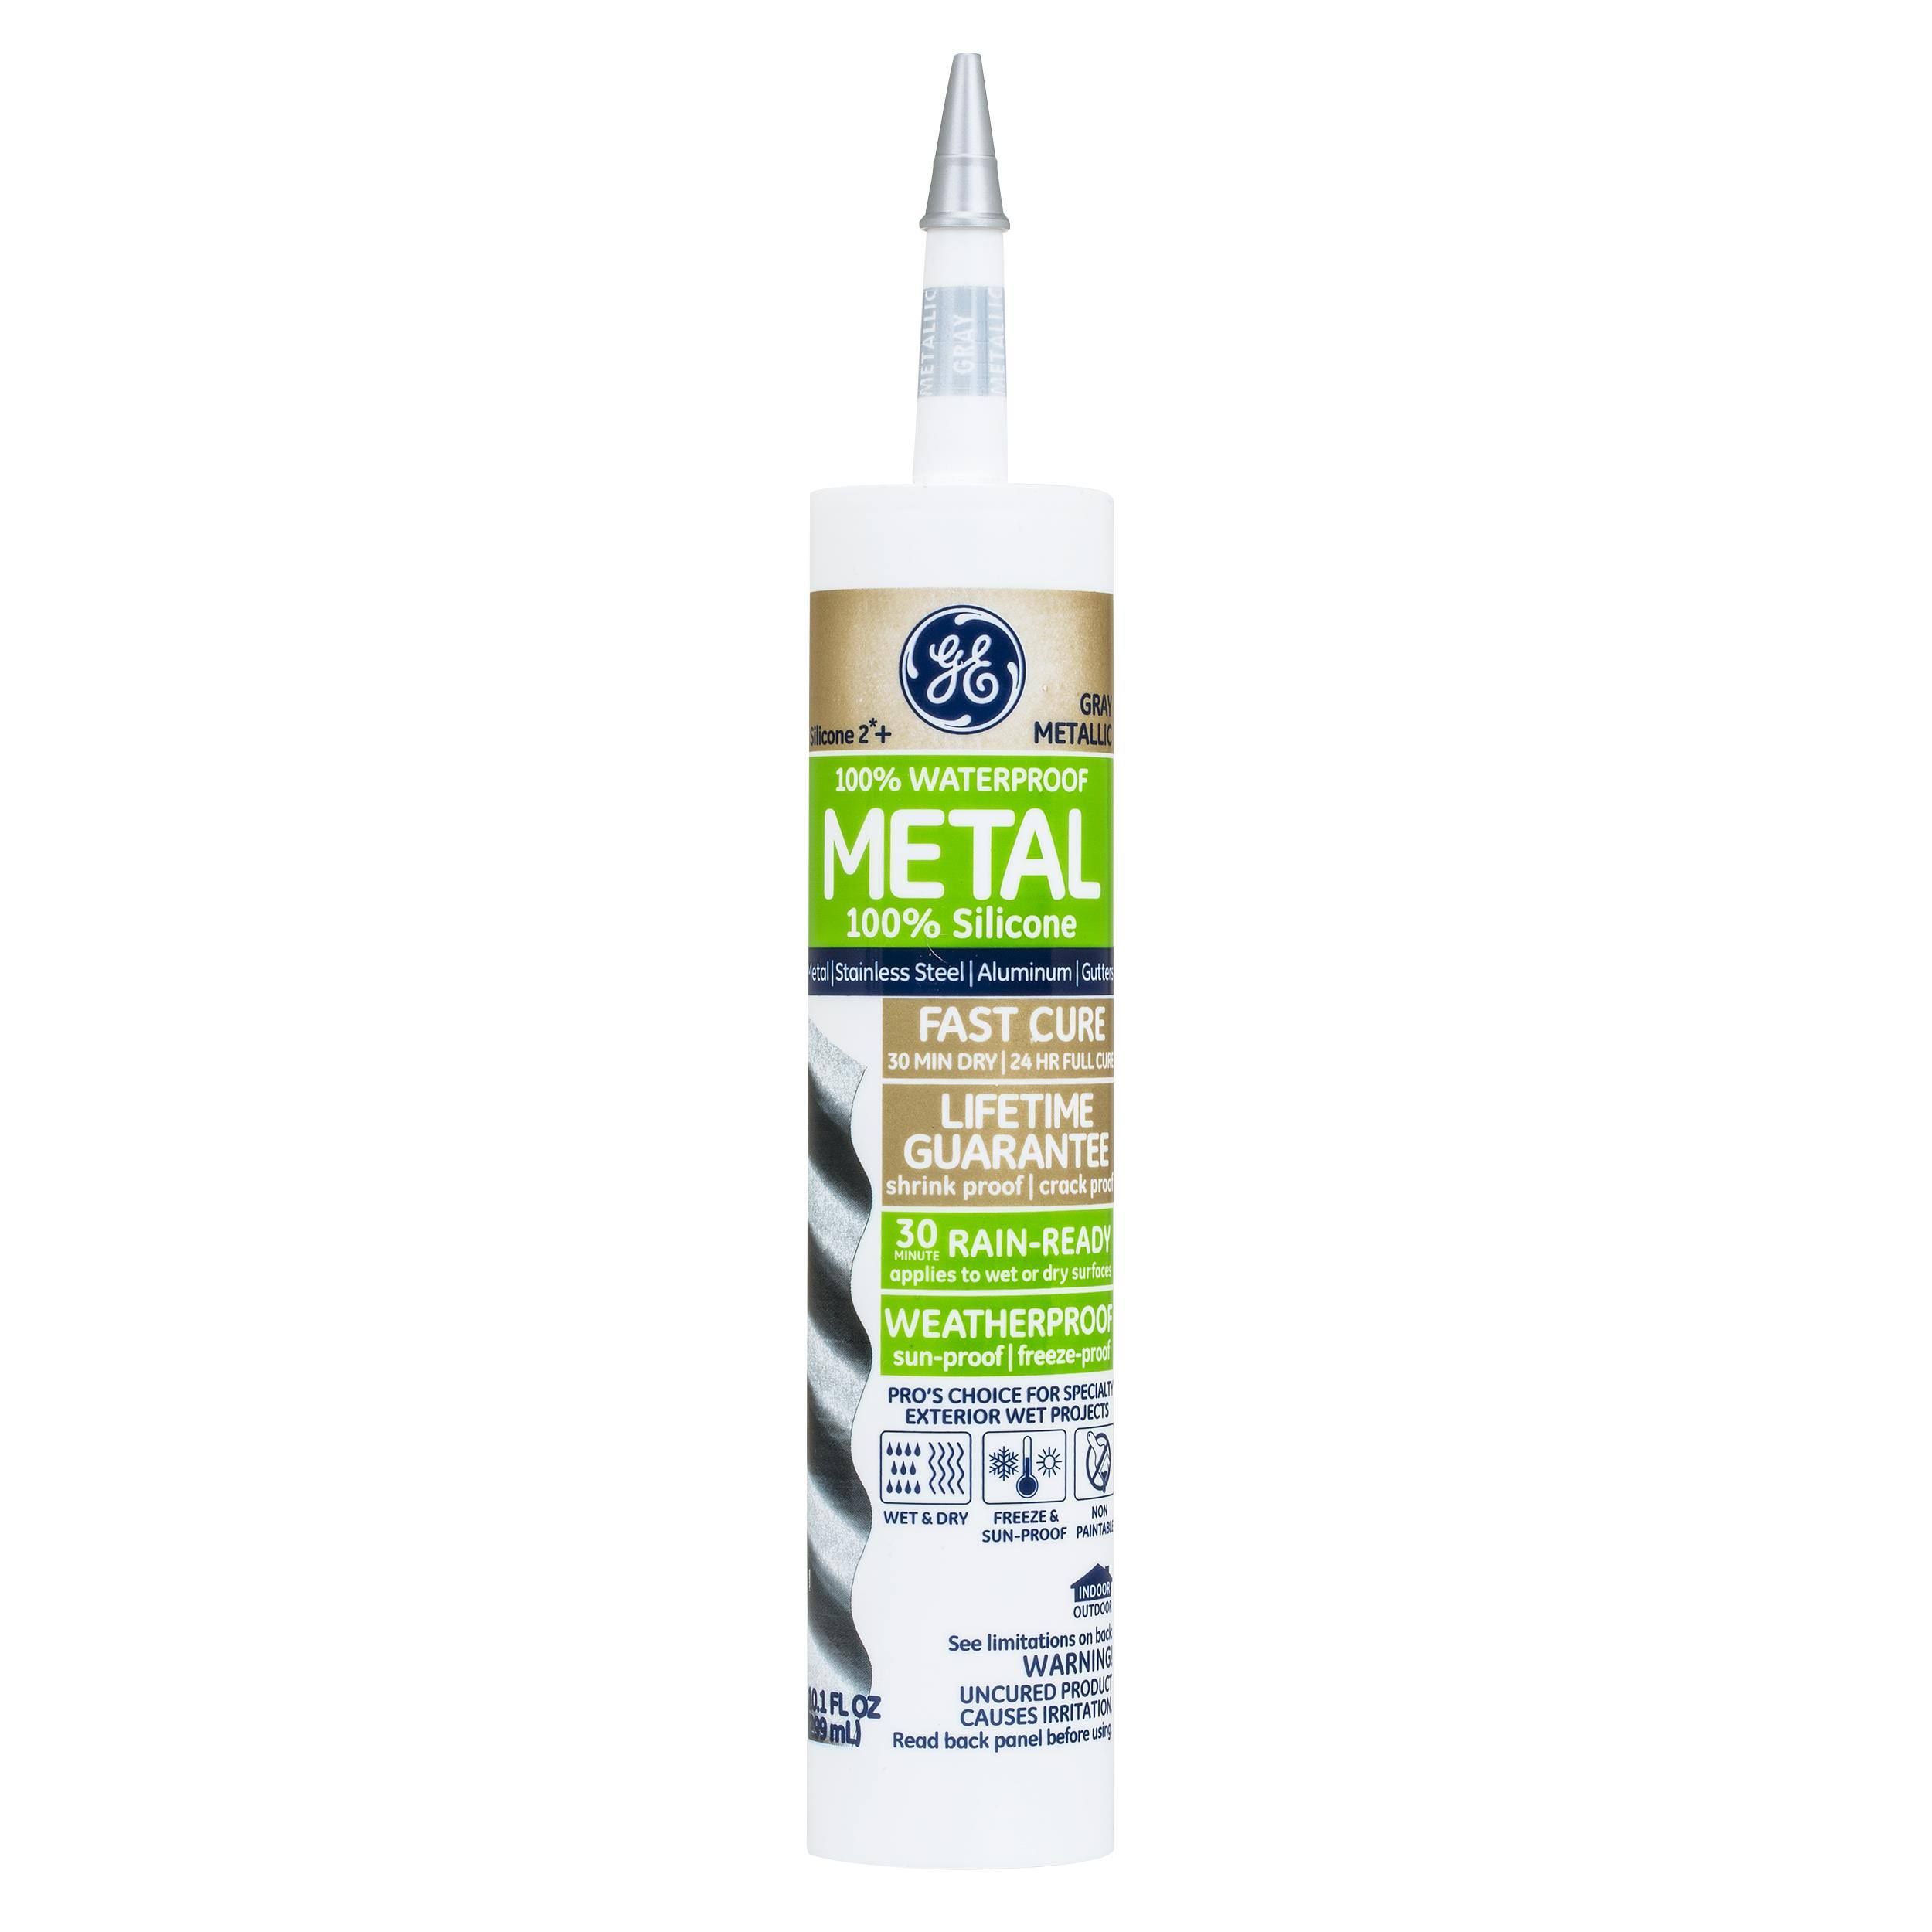 General Electric Aluminum and Metal Metallic Silicone II Caulk - 9.8oz, Grey